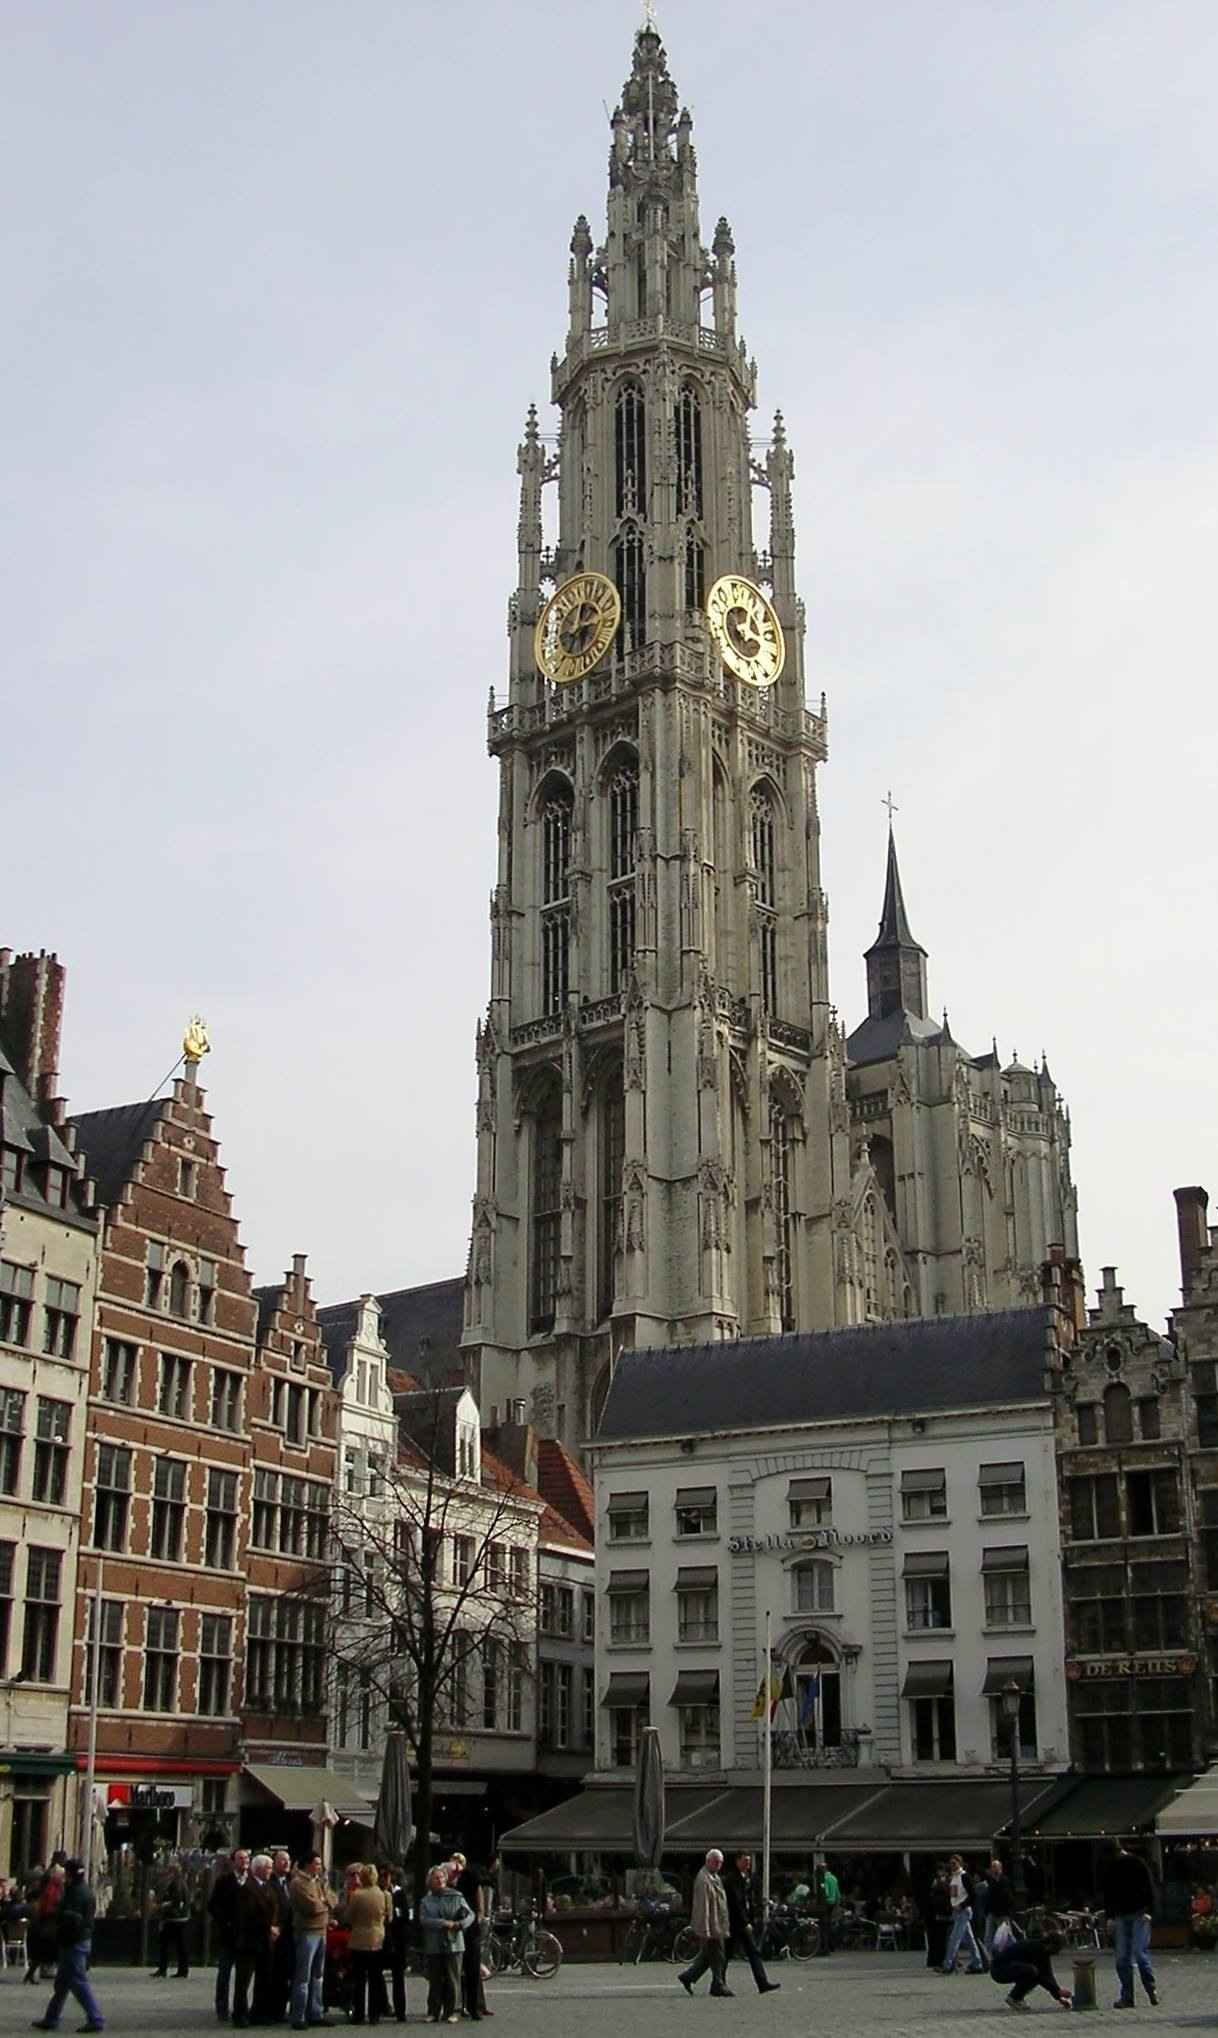 Antwerp, Belgium Cathedral of Our Lady from the Big Market Square by Rosario Di Rubbo